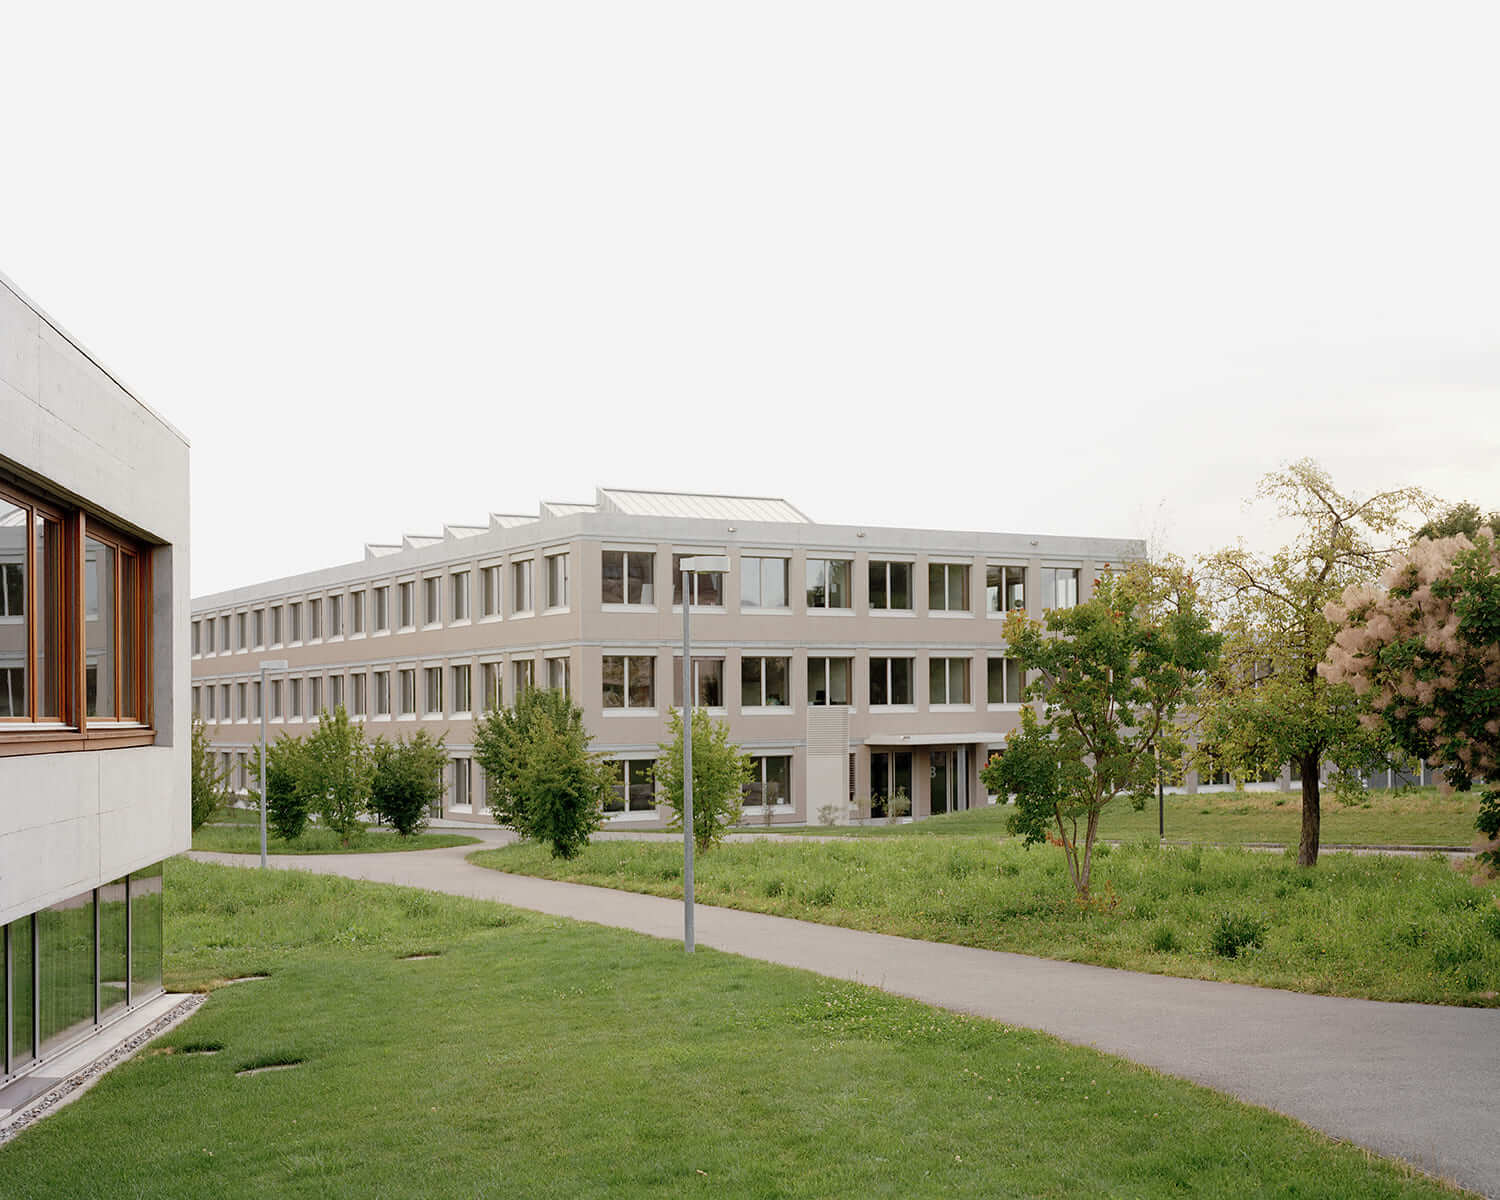 Secondary School Romanshorn  - 27 2.1 35